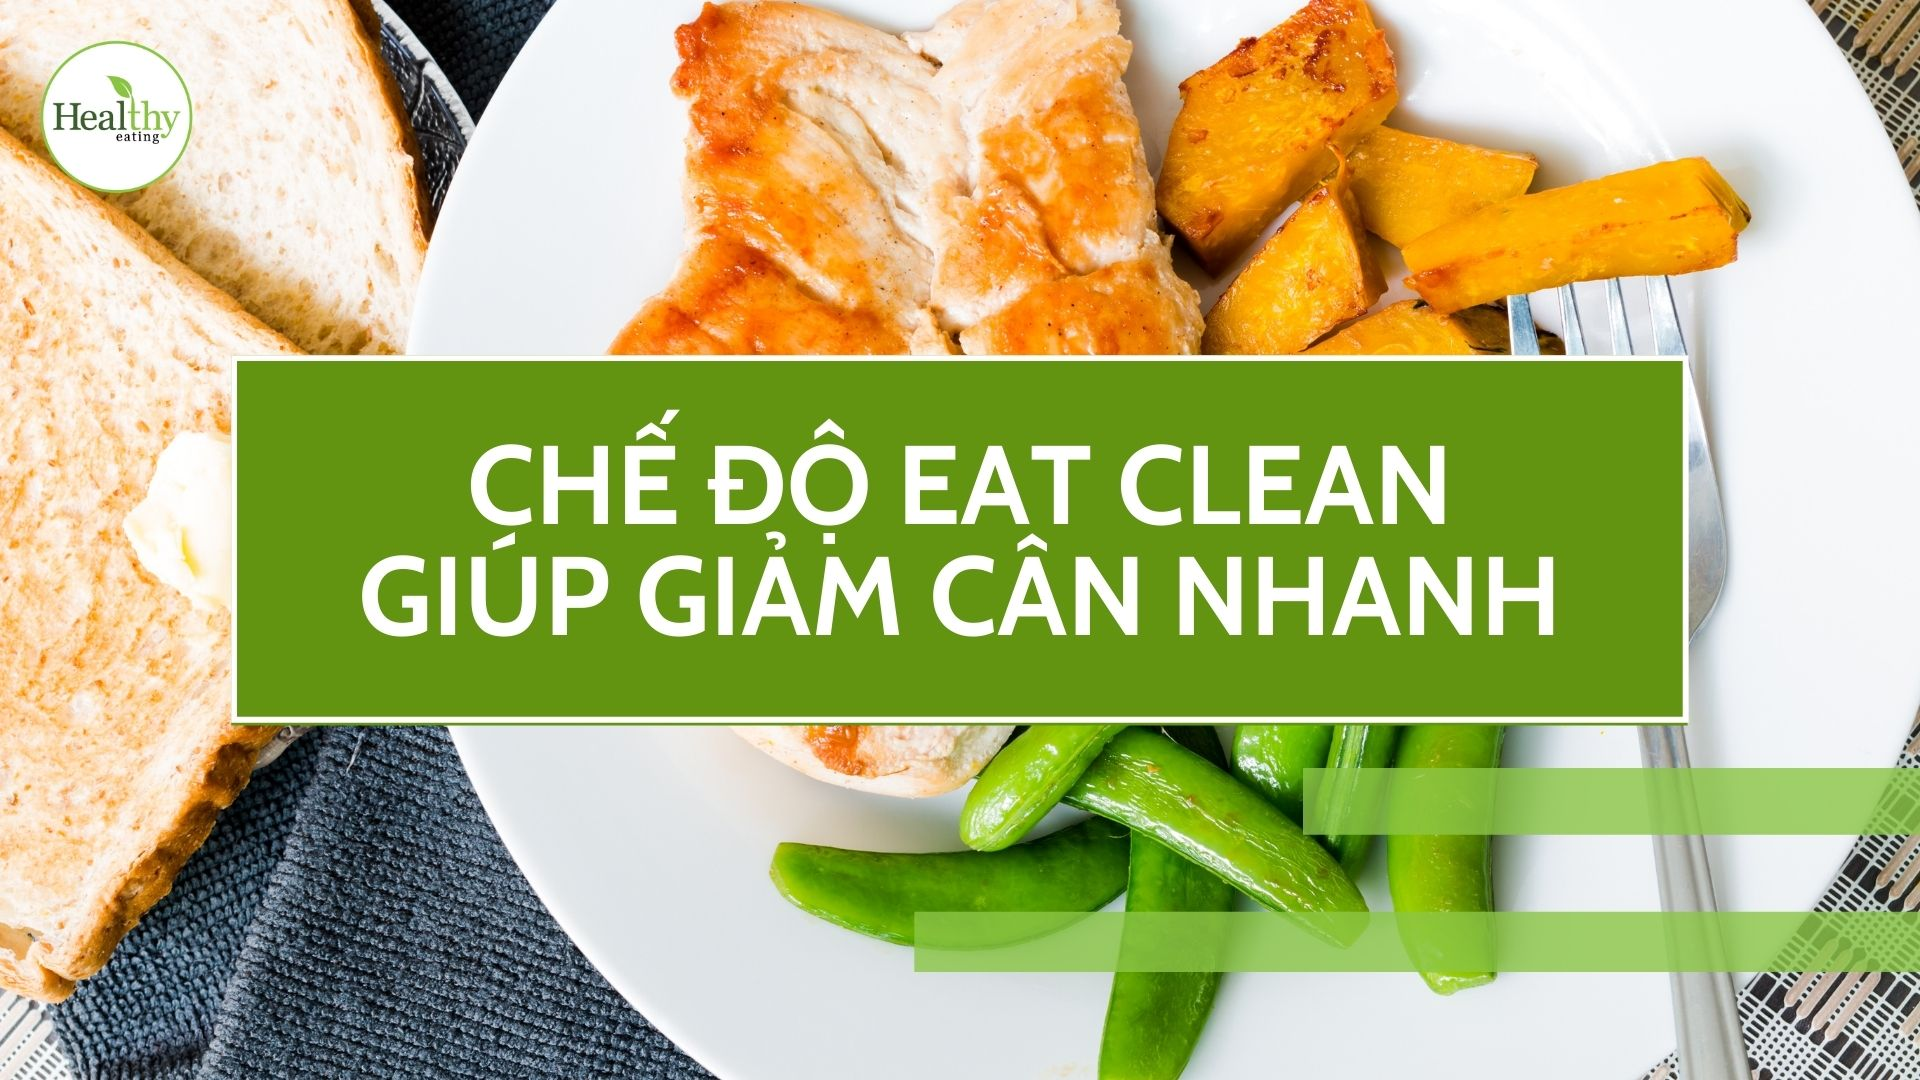 che-do-eat-clean